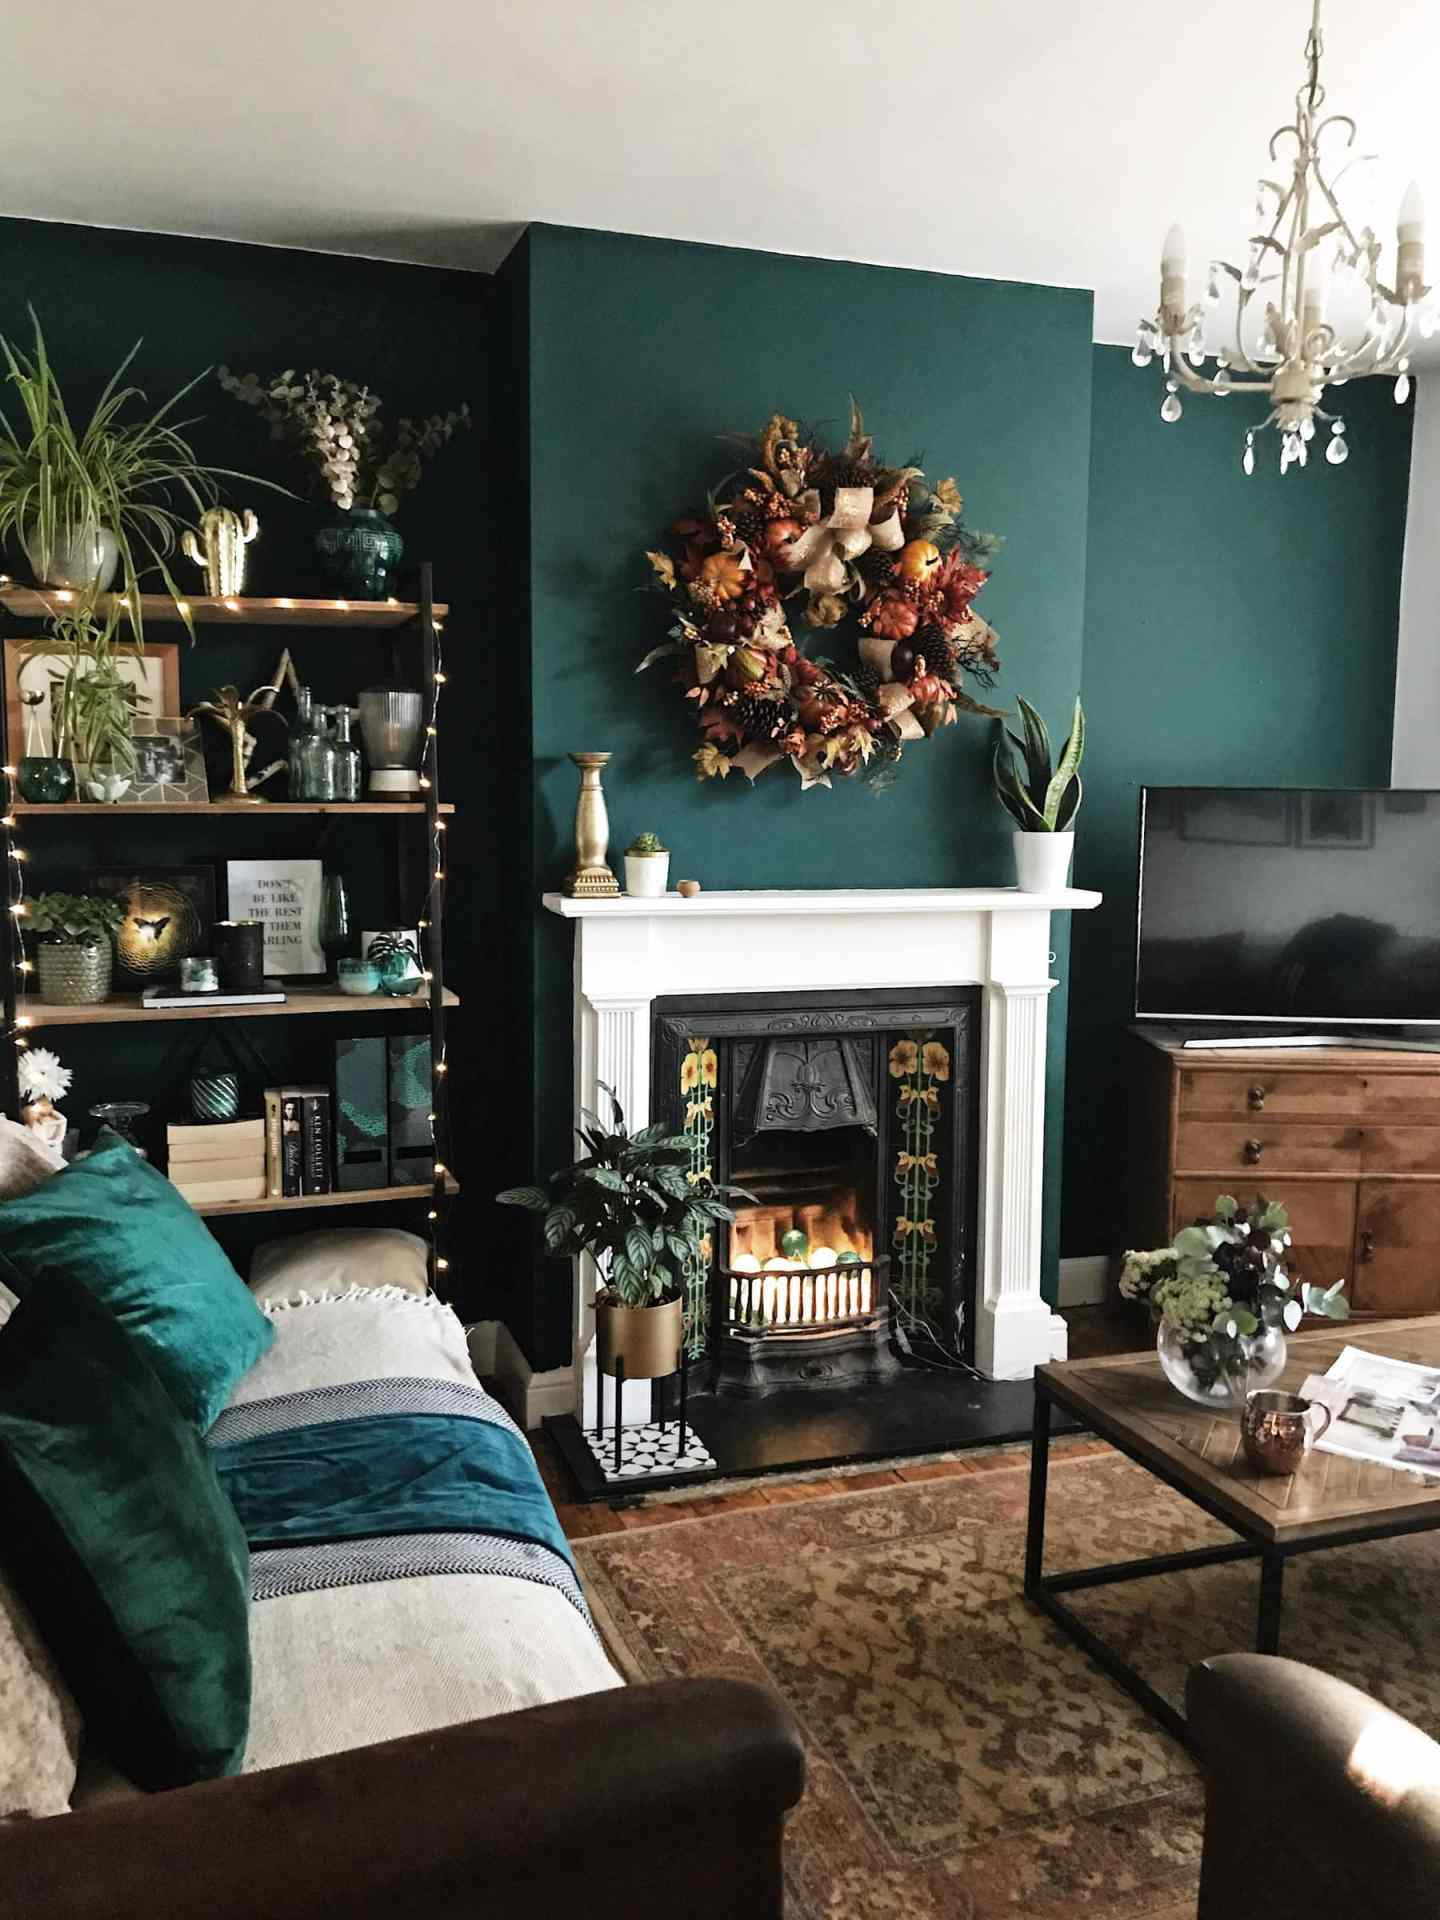 A very autumnal looking living room - this was taken in October, obviously! :)